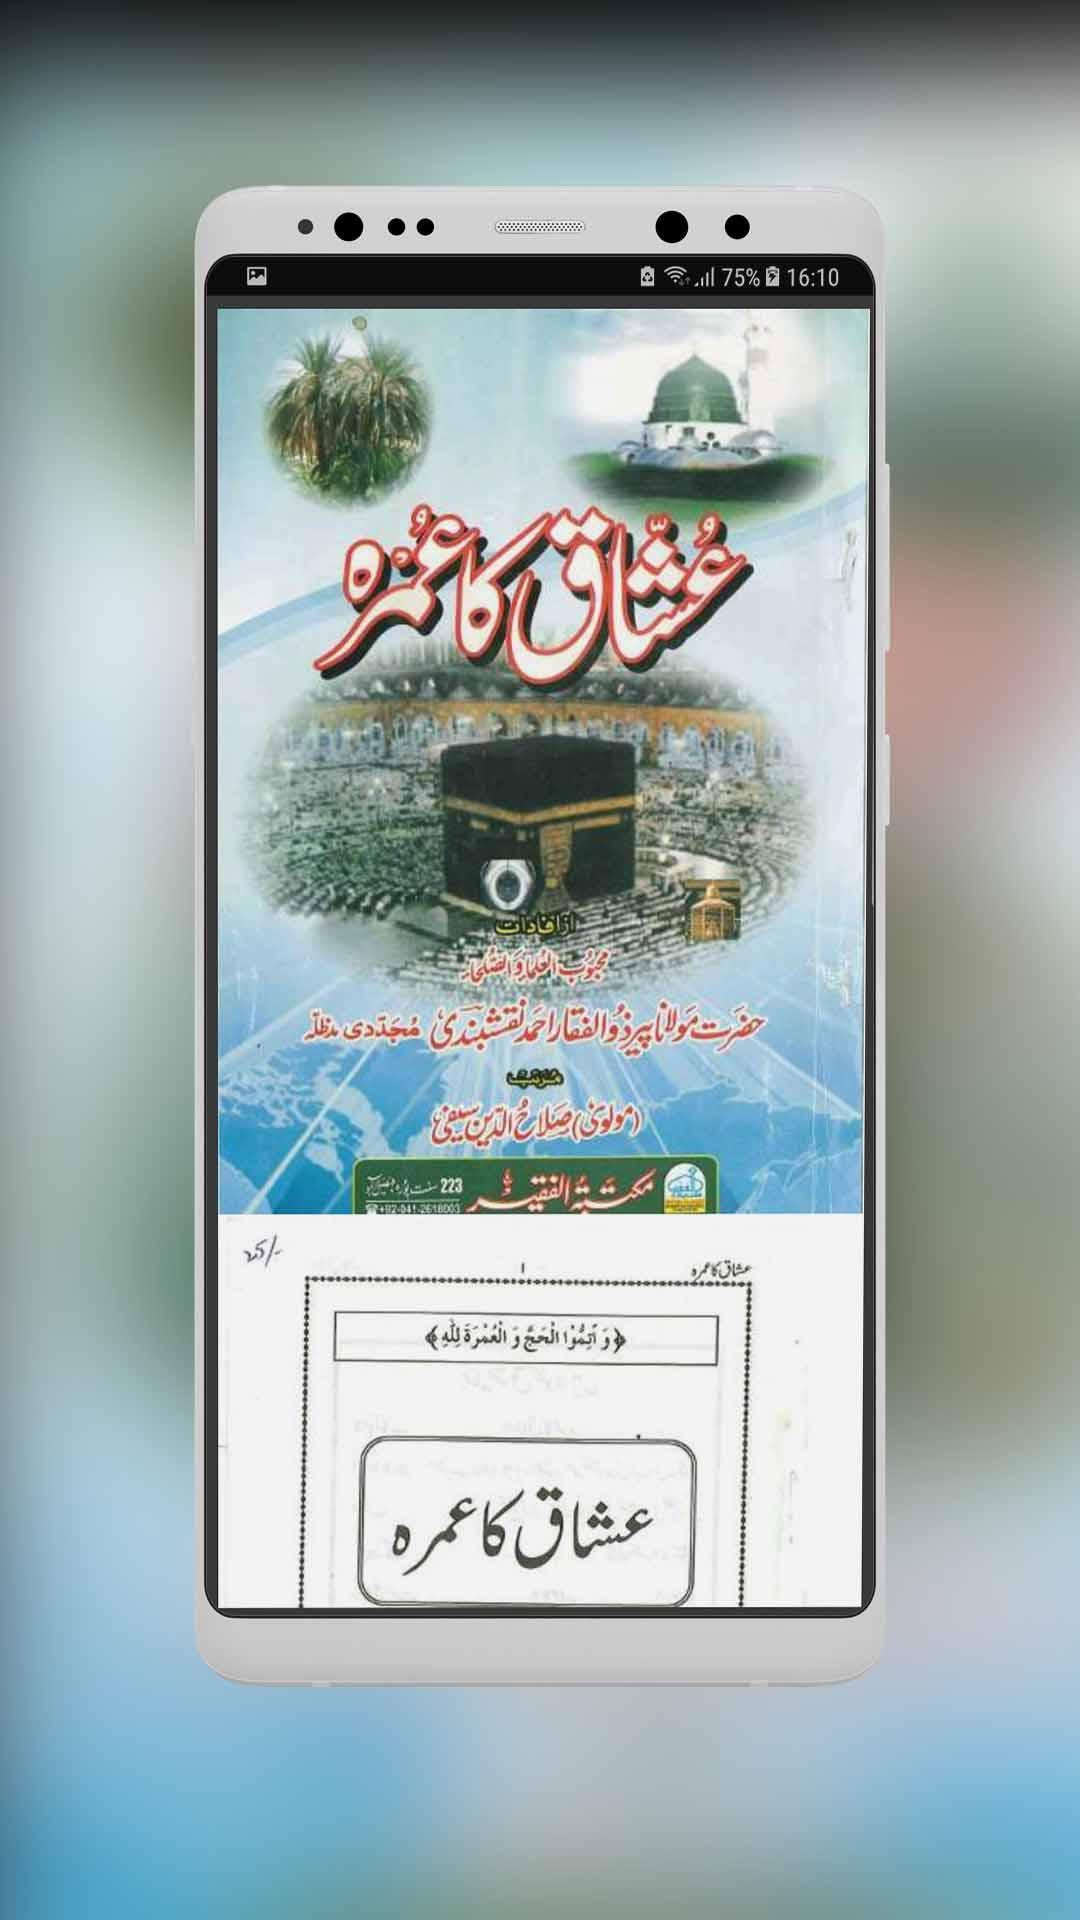 Peer Zulfiqar Ahmad Naqshbandi books for Android - APK Download